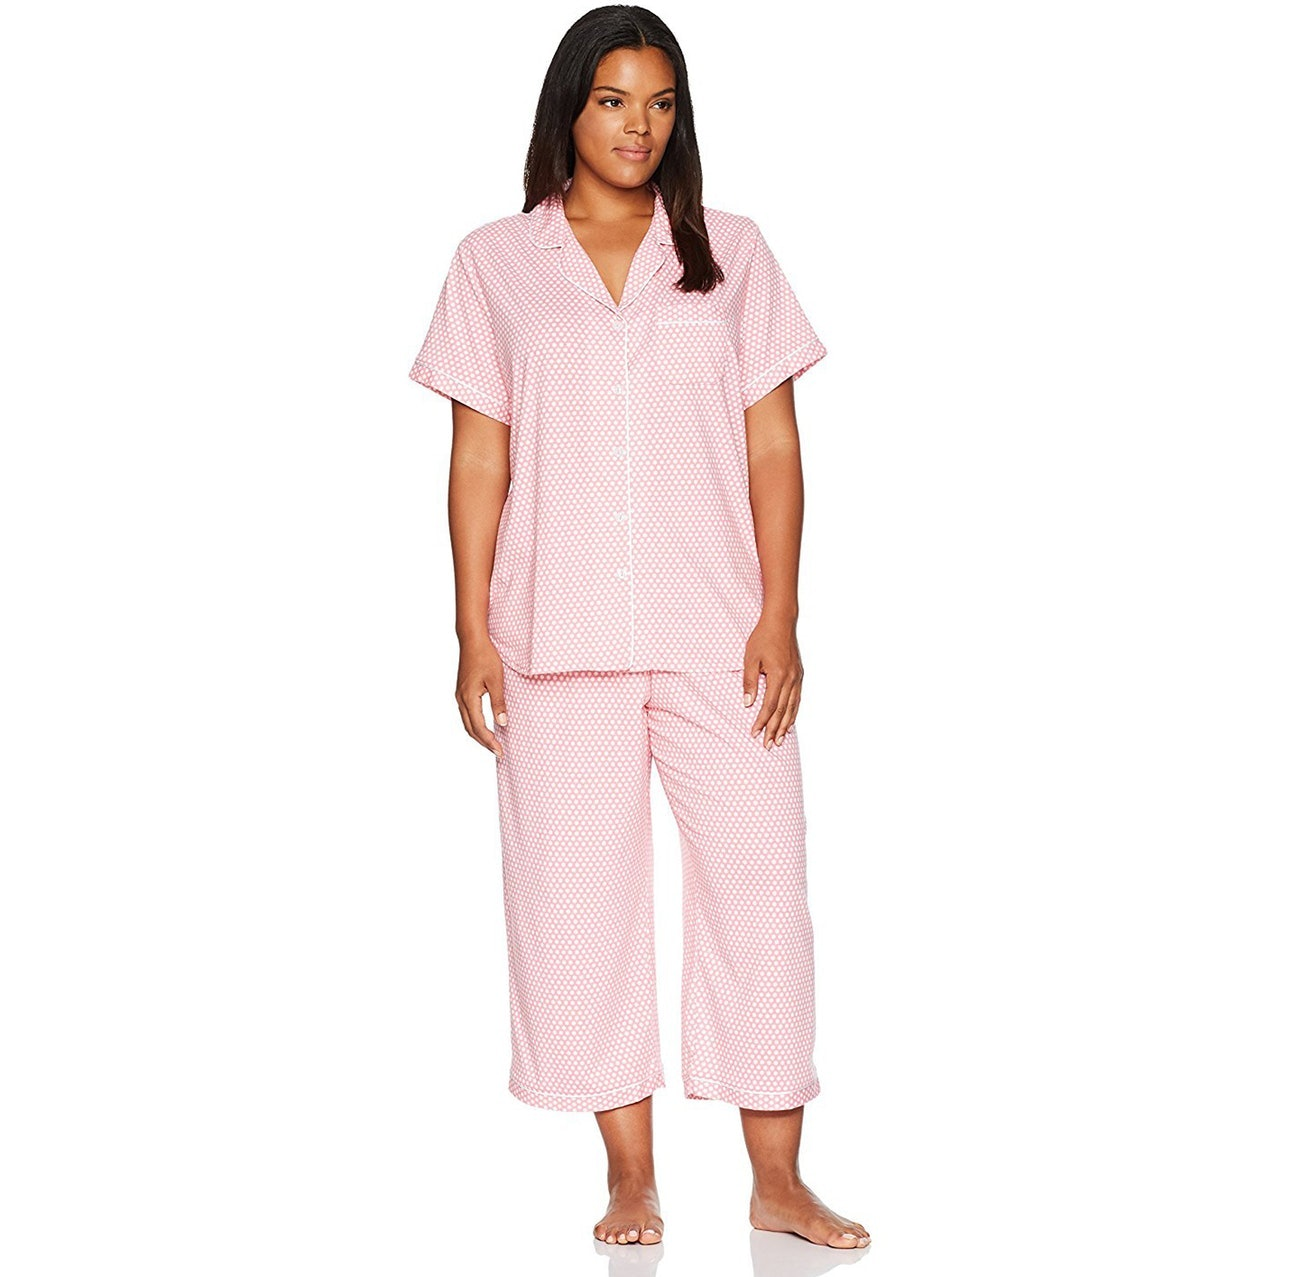 7b8a3b0d1e The 16 Best Pajamas To Keep Sweaty Sleepers Cool